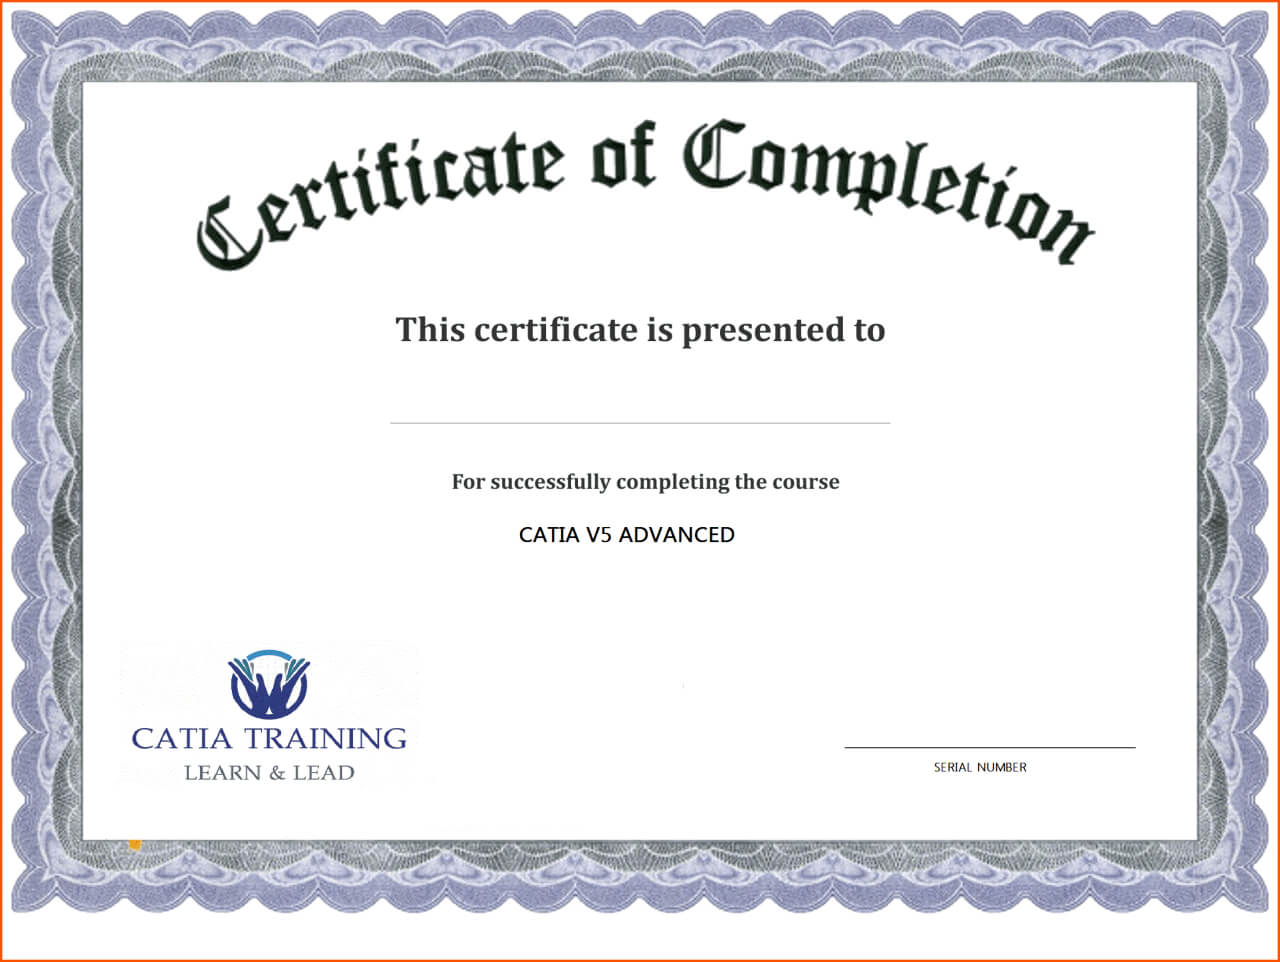 Certificate Template Free Printable - Free Download regarding Blank Certificate Templates Free Download